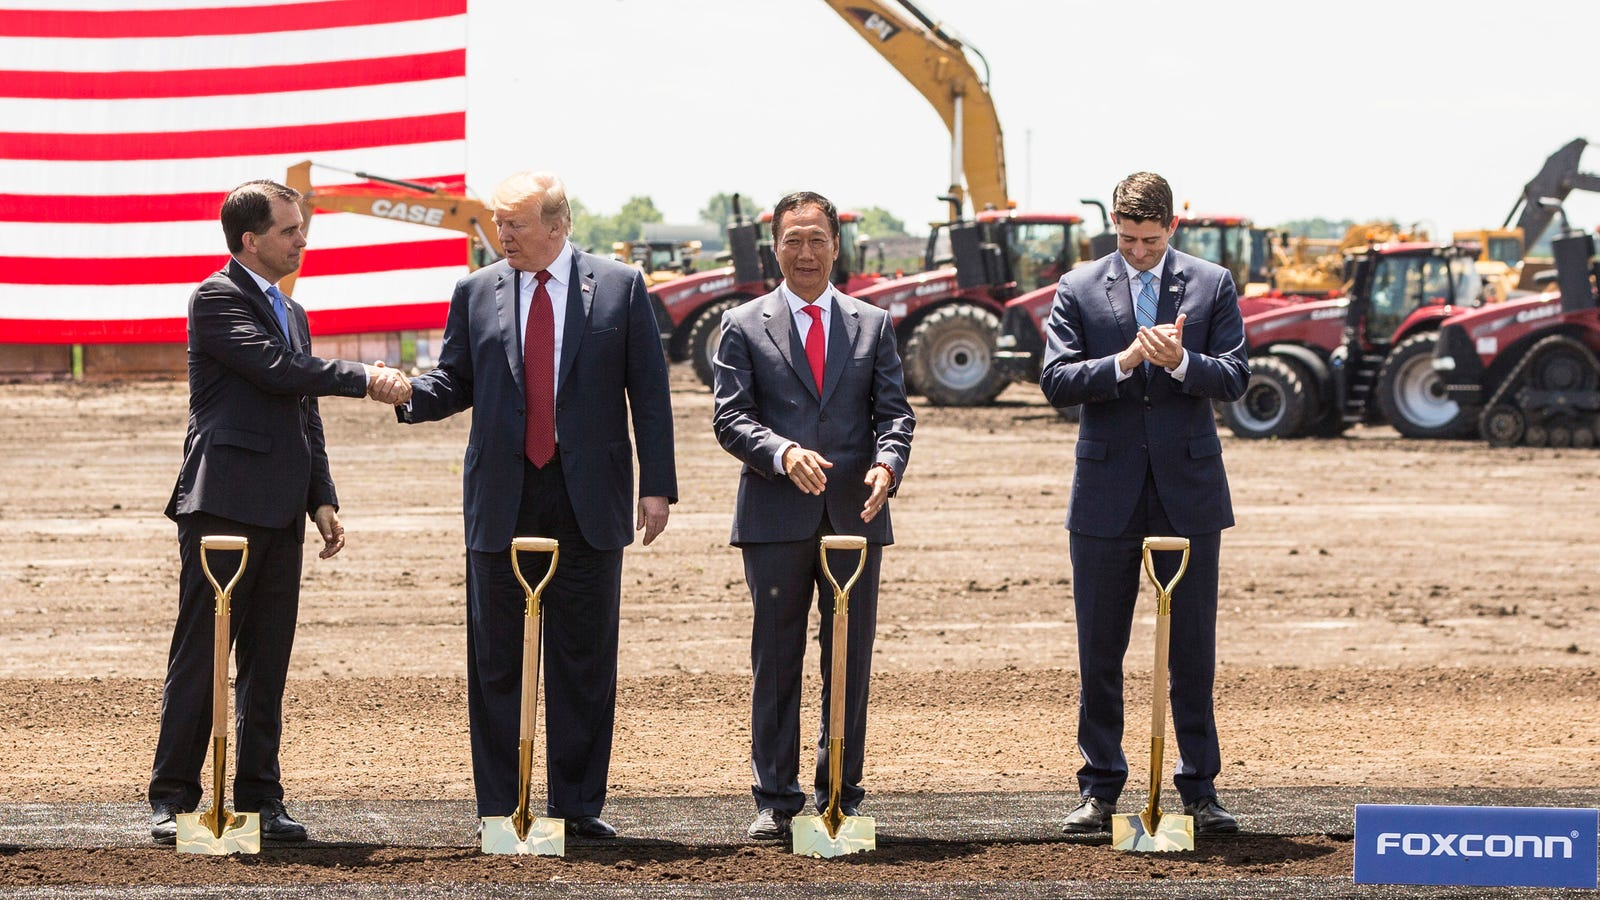 Foxconn Plant to Open in 2020 With Fewer Jobs Than Promised, and State Rep Has 'No Idea What They're Actually Going to Be Doing'